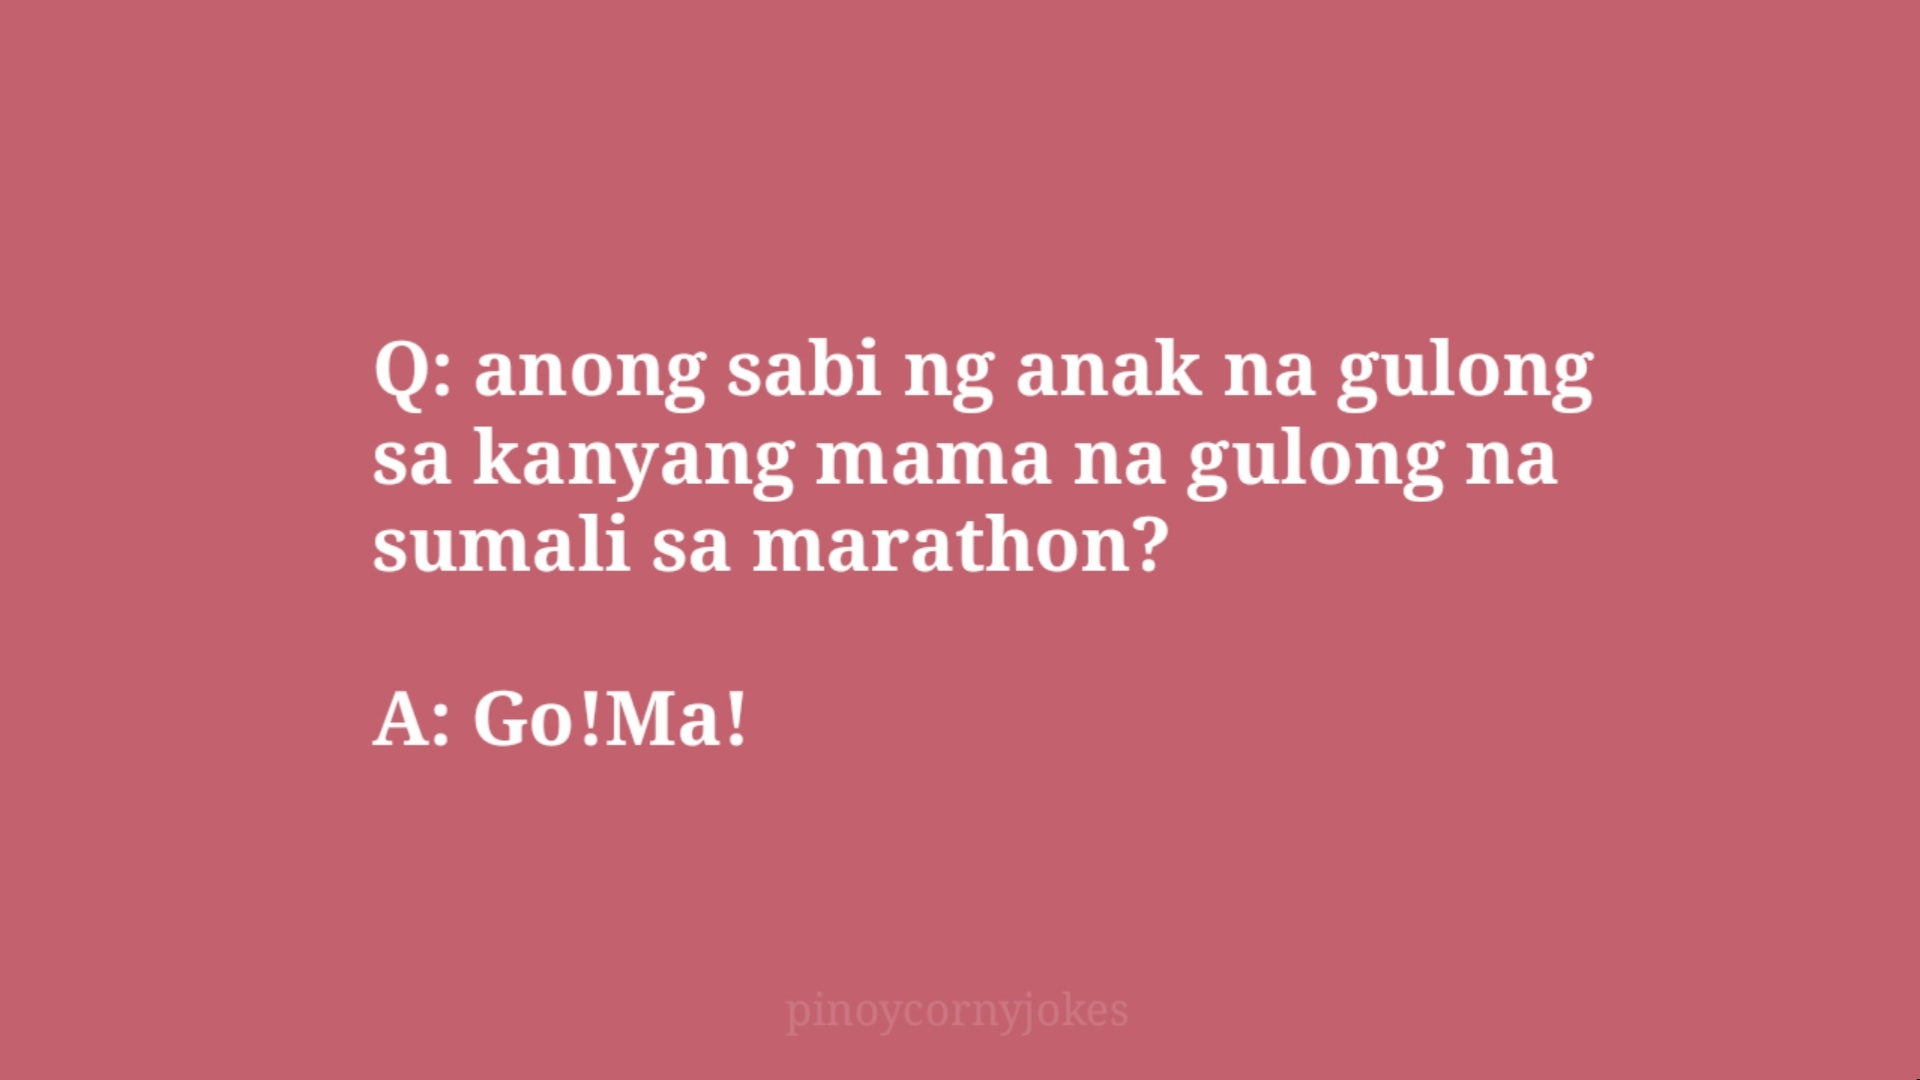 go ma tagalog jokes question and answer